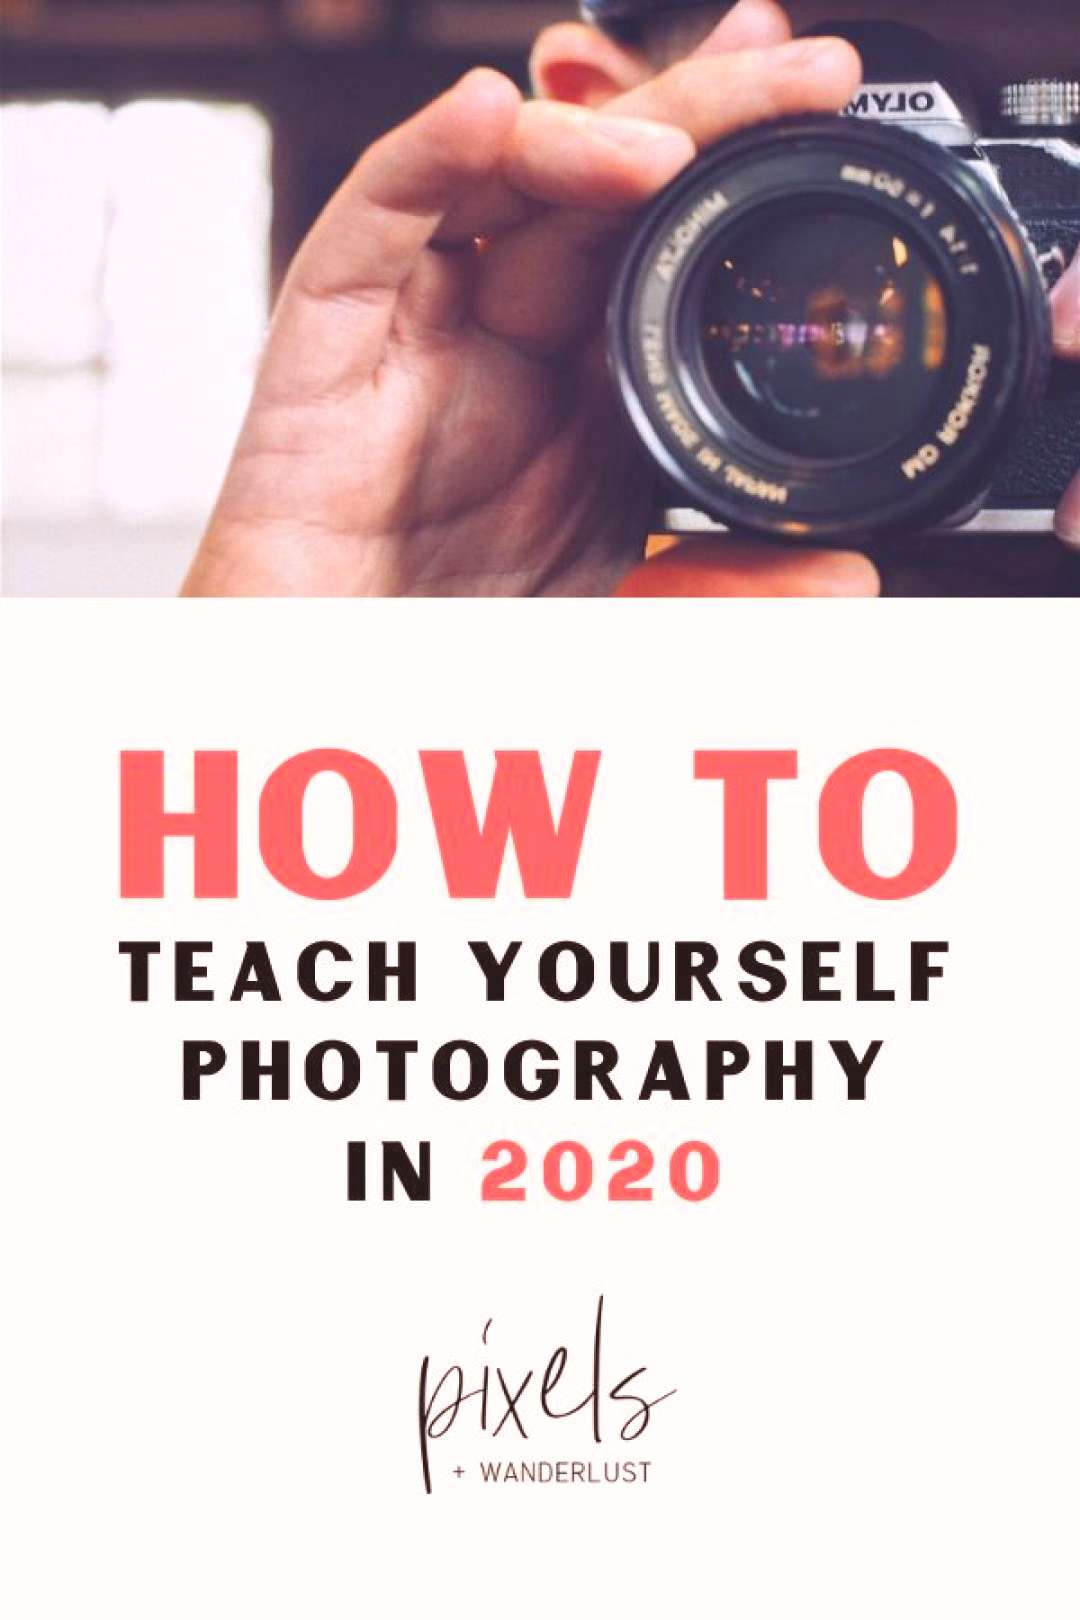 How To Teach Yourself Photography in 2020 Heres a step-by-step guide to help you go from being a d